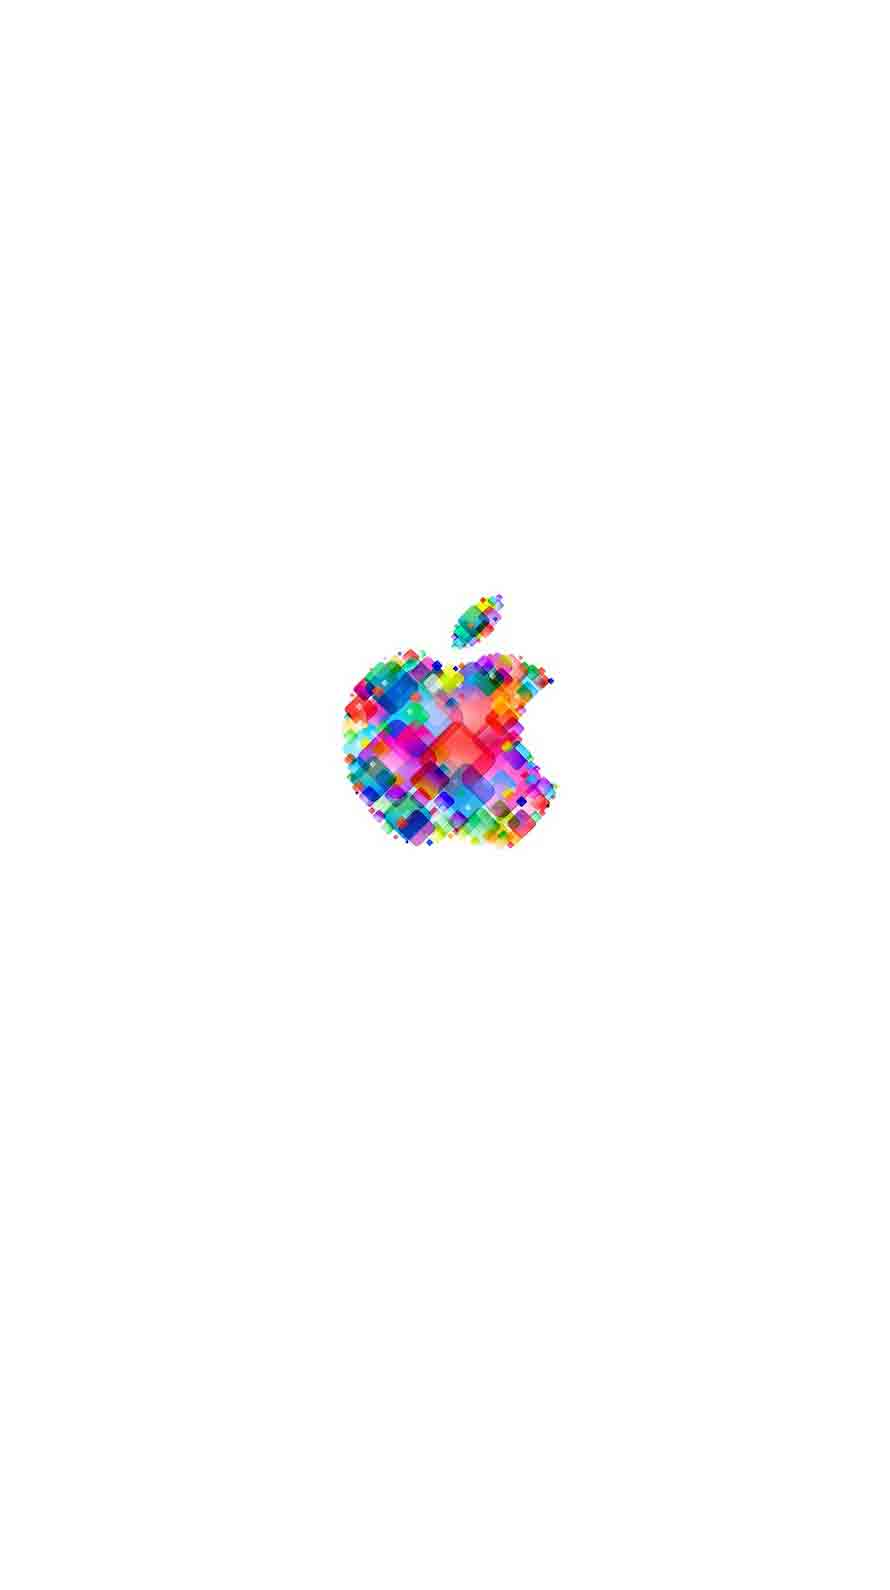 Apple logo pop colorful white   wallpaper.sc iPhone6s Iphone 5c White With Black Case